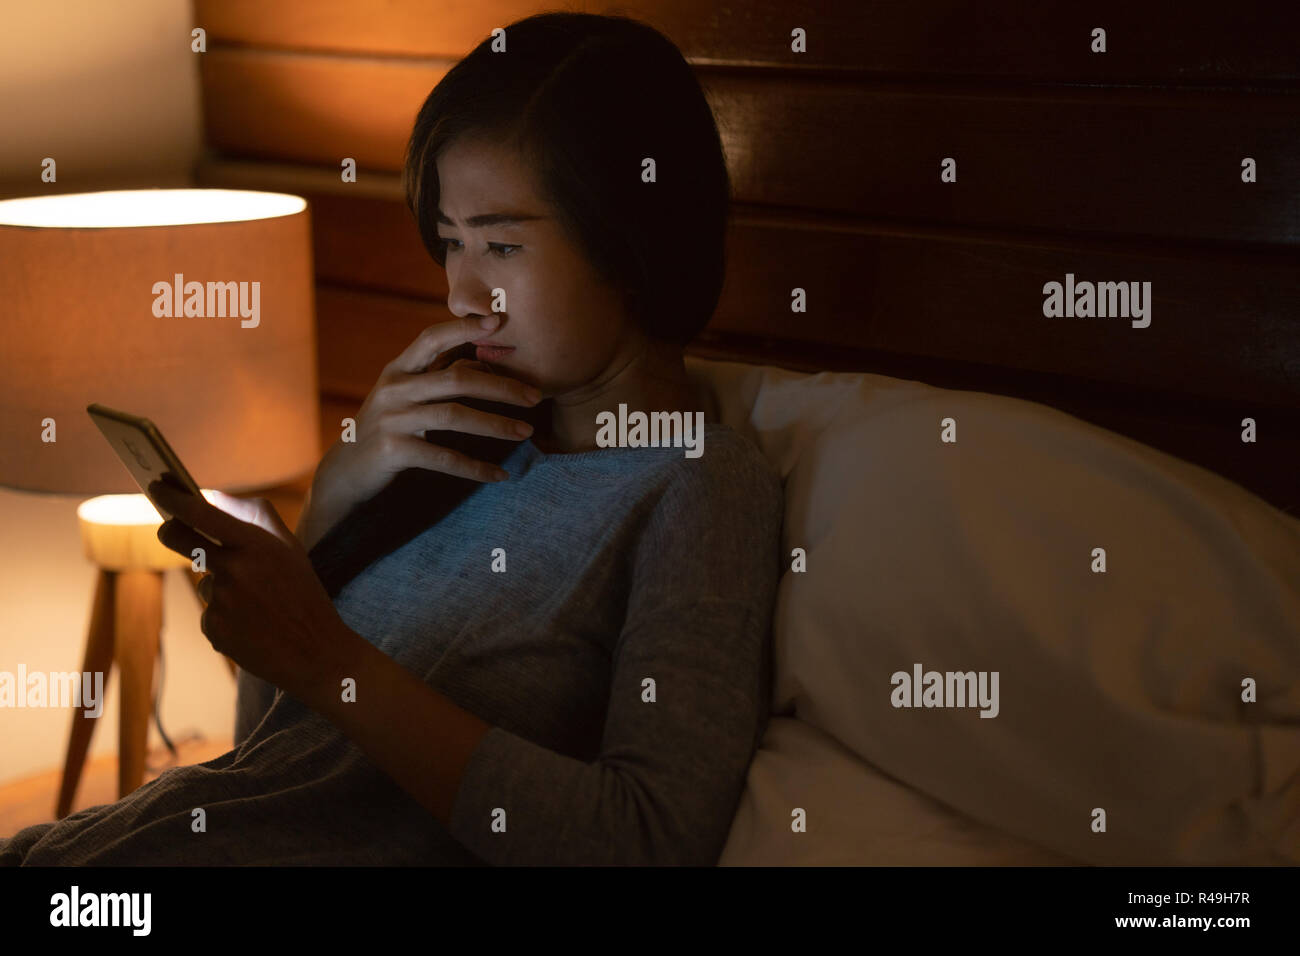 shocked woman finding bad news in a smart phone - Stock Image